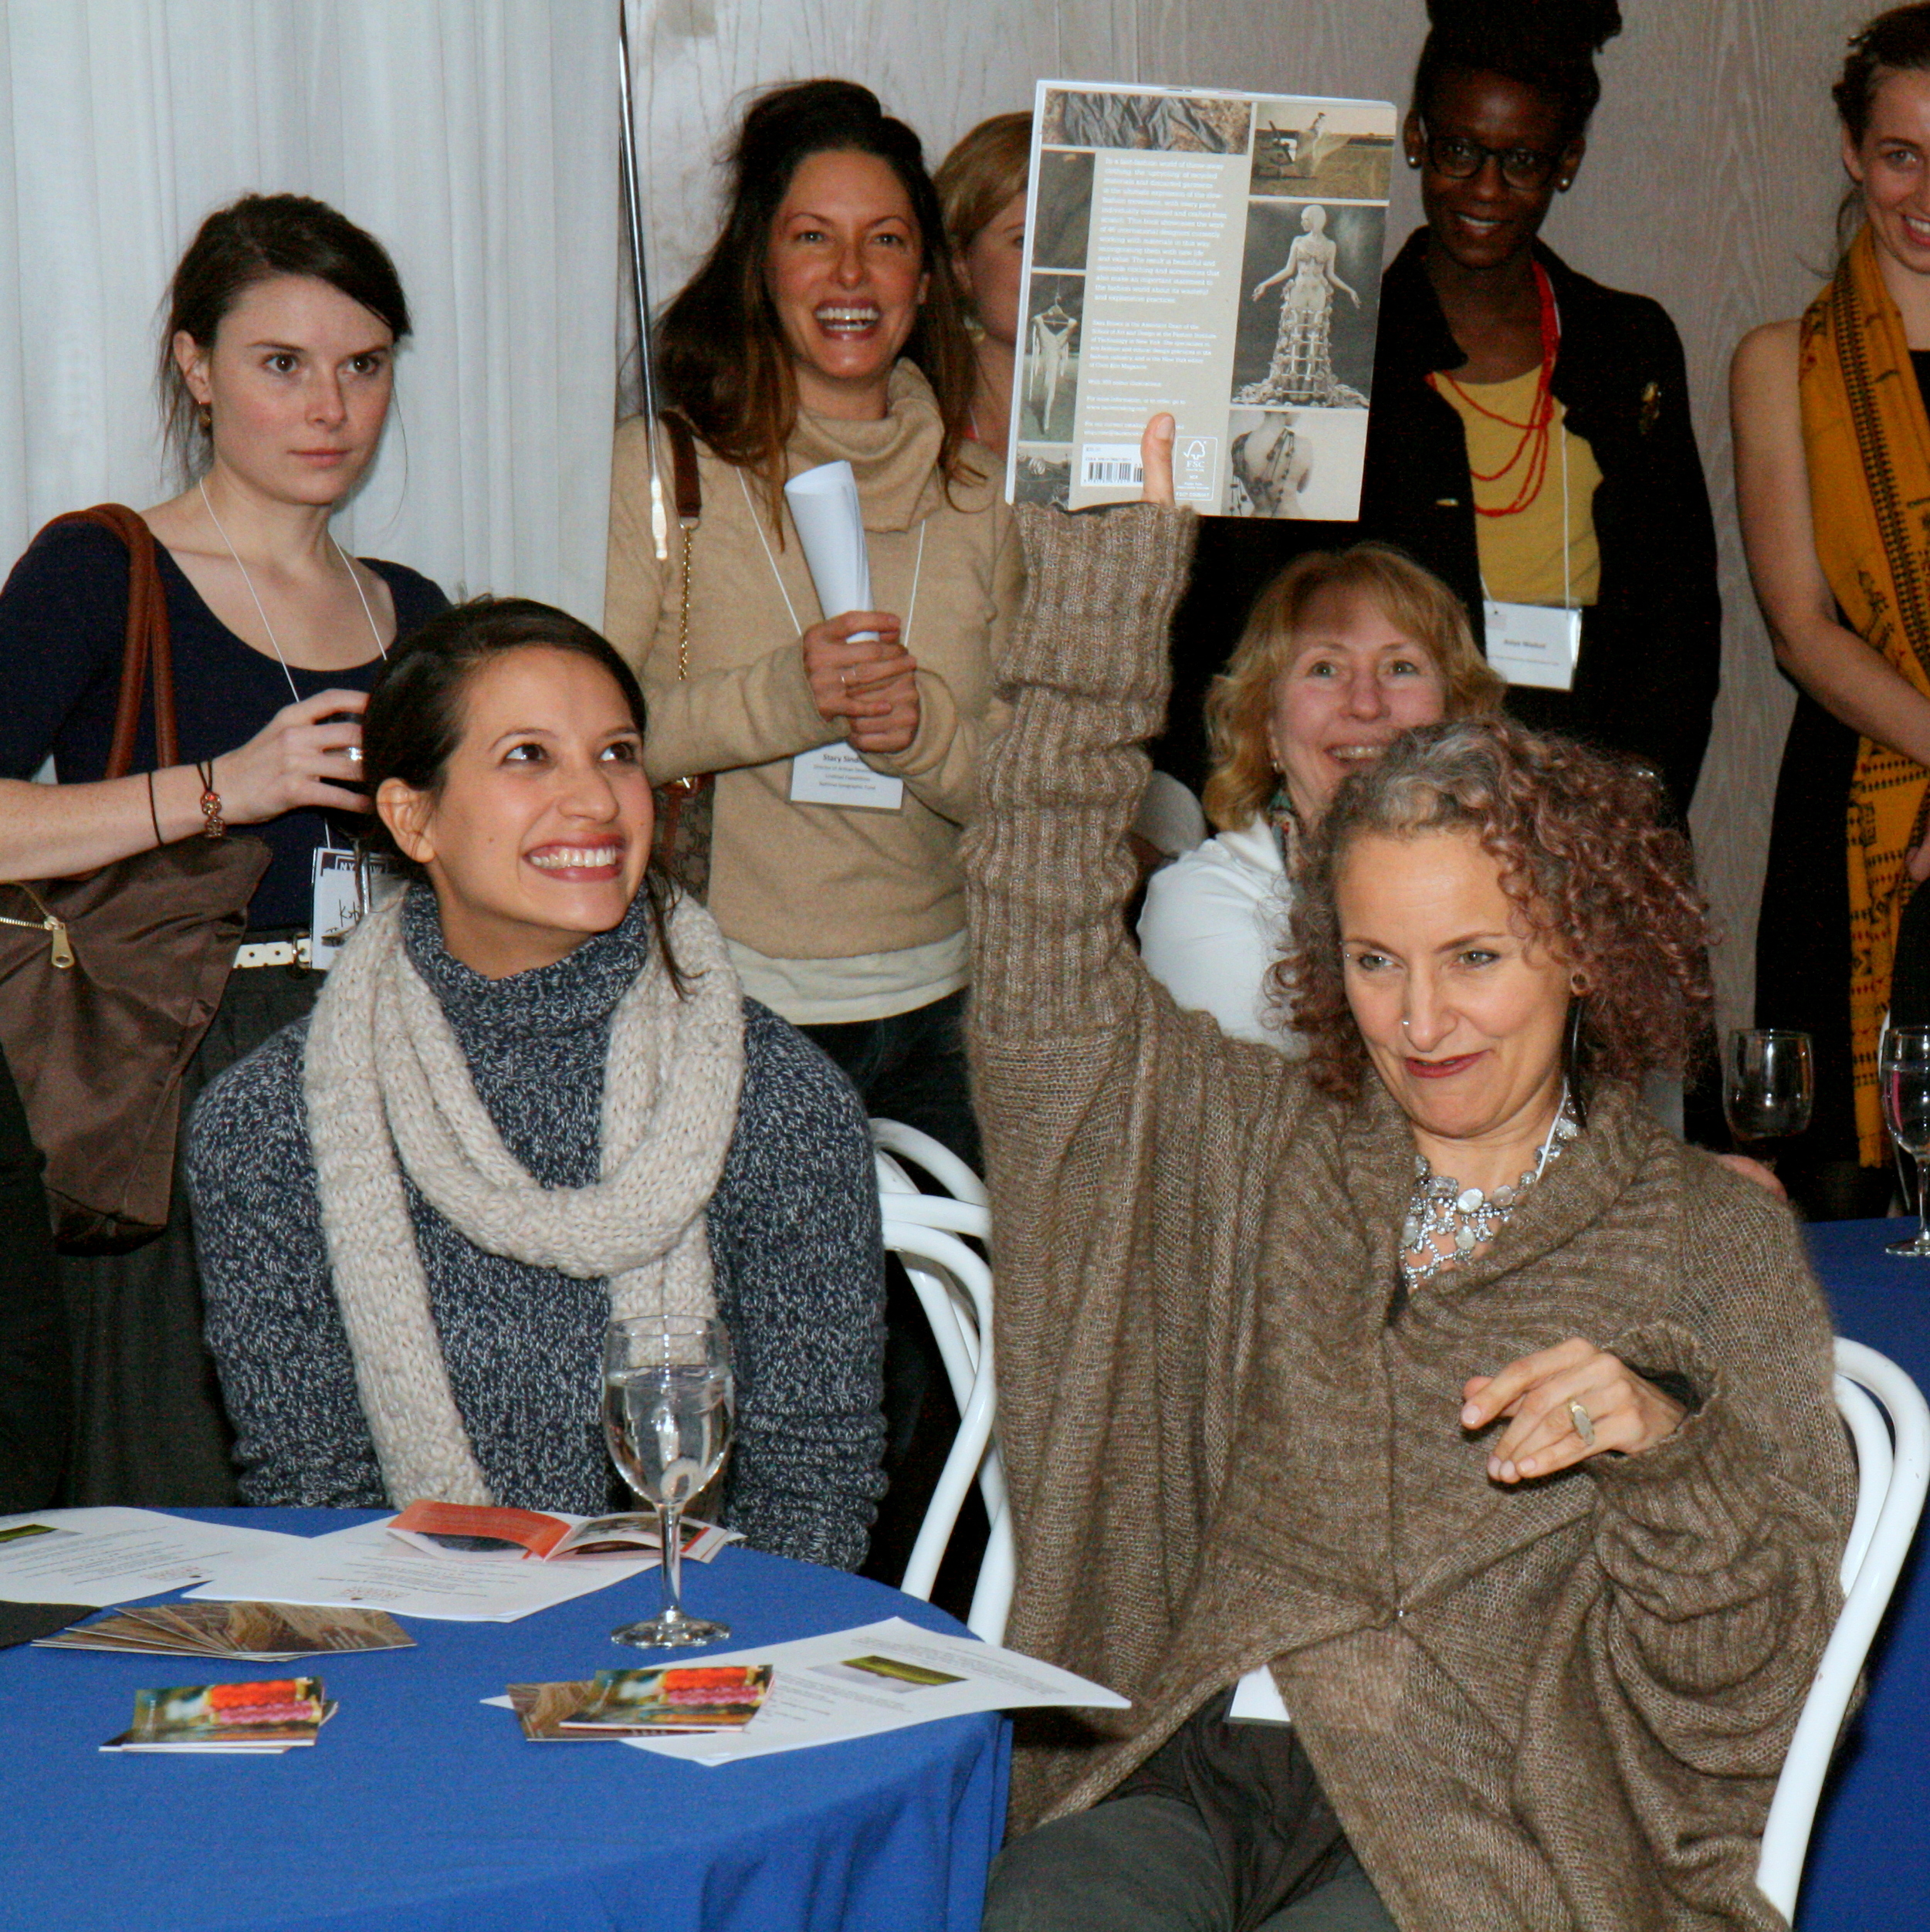 Sass Brown proudly raises the copy of her forthcoming book Refashioned